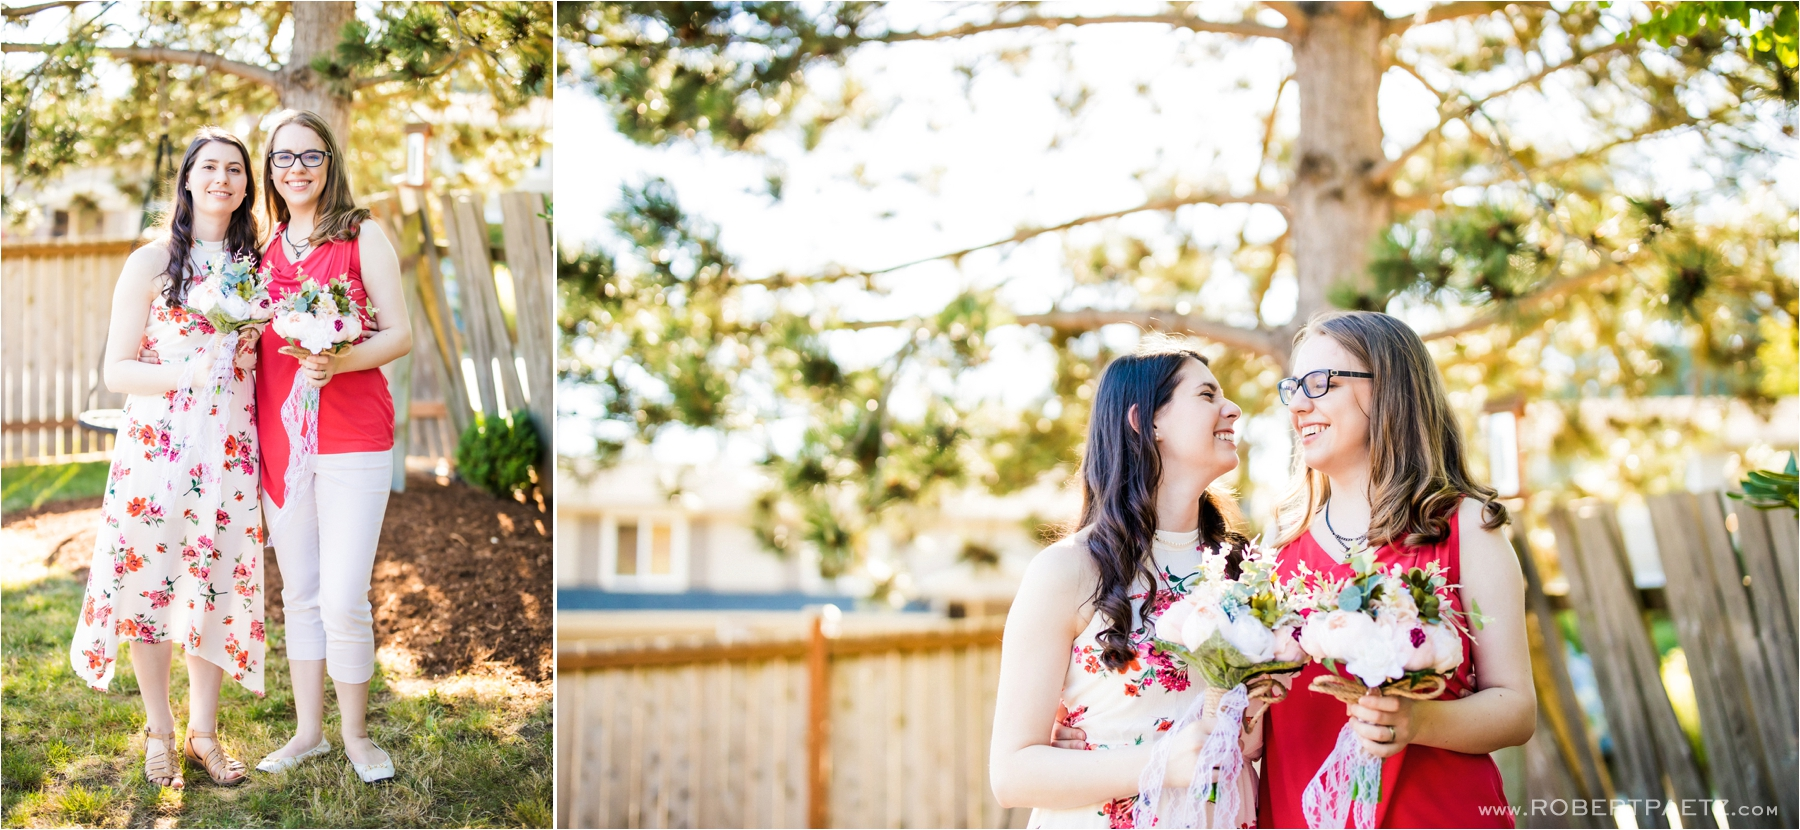 A backyard, social distanced, Zoom wedding in Kirkland Seattle, Washington, during the Covid-19 pandemic photographed by the destination wedding photographer, Robert Paetz.